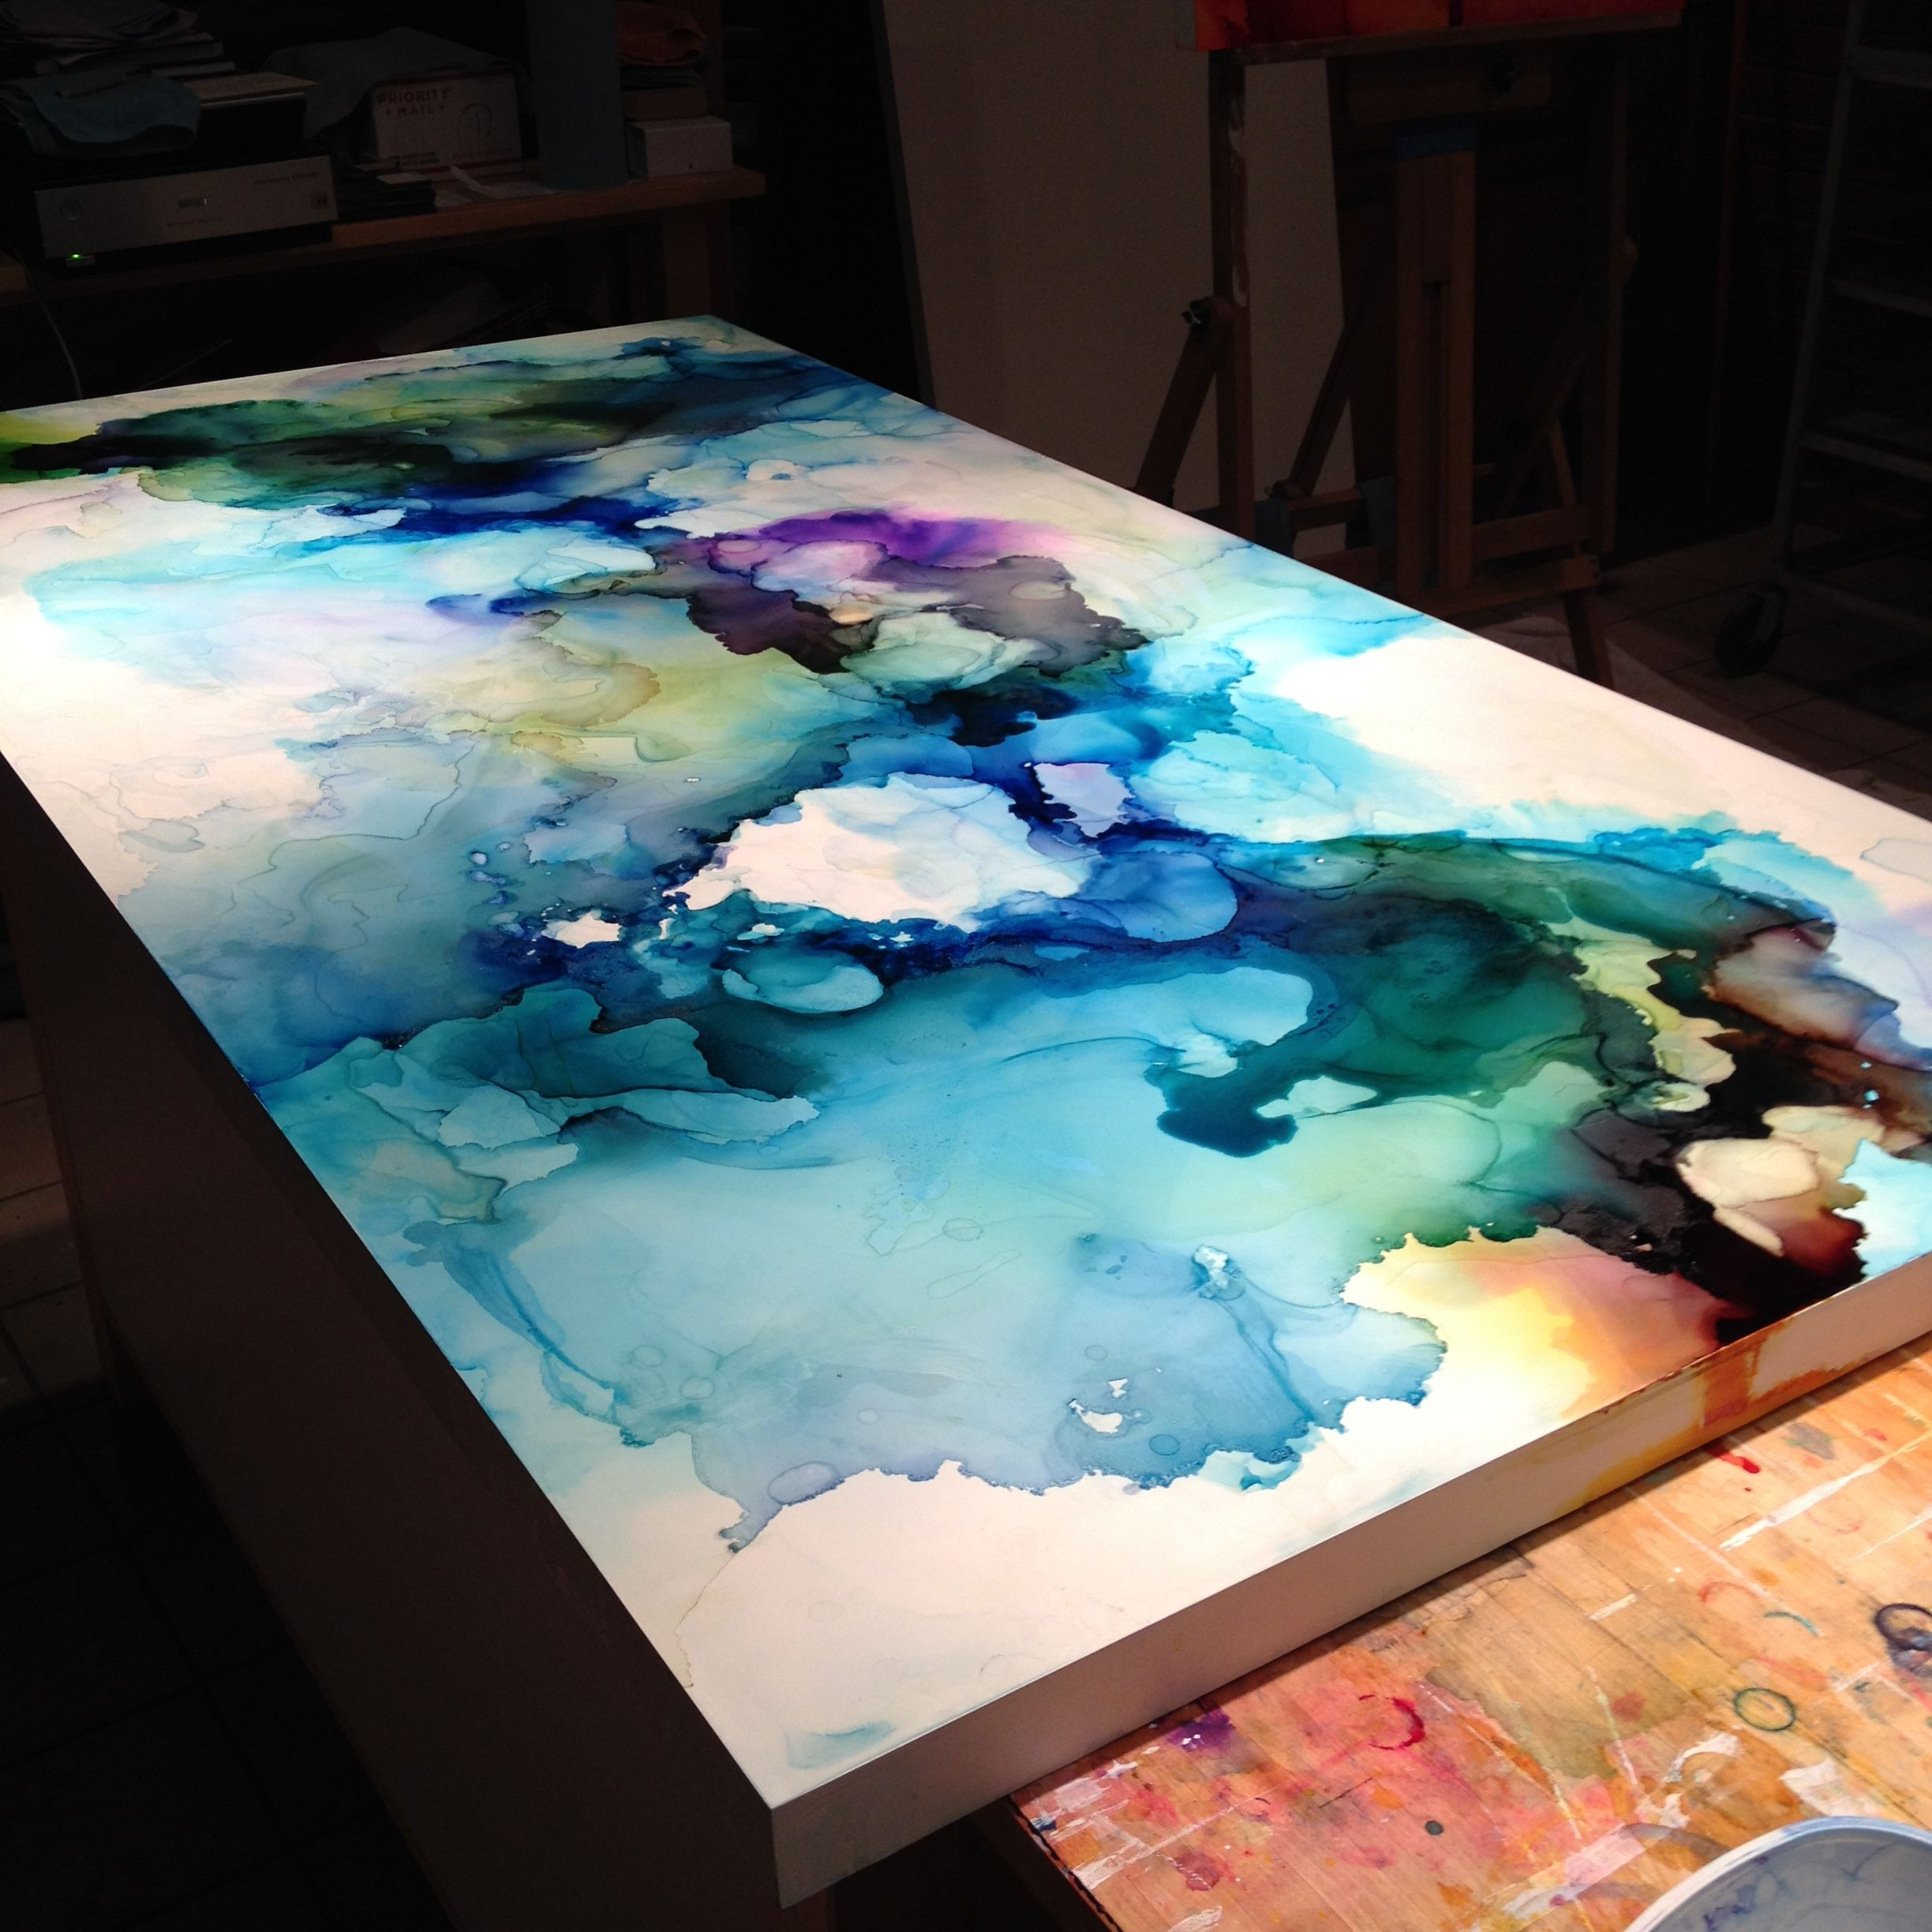 Decorative art watercolor or wash on canvas